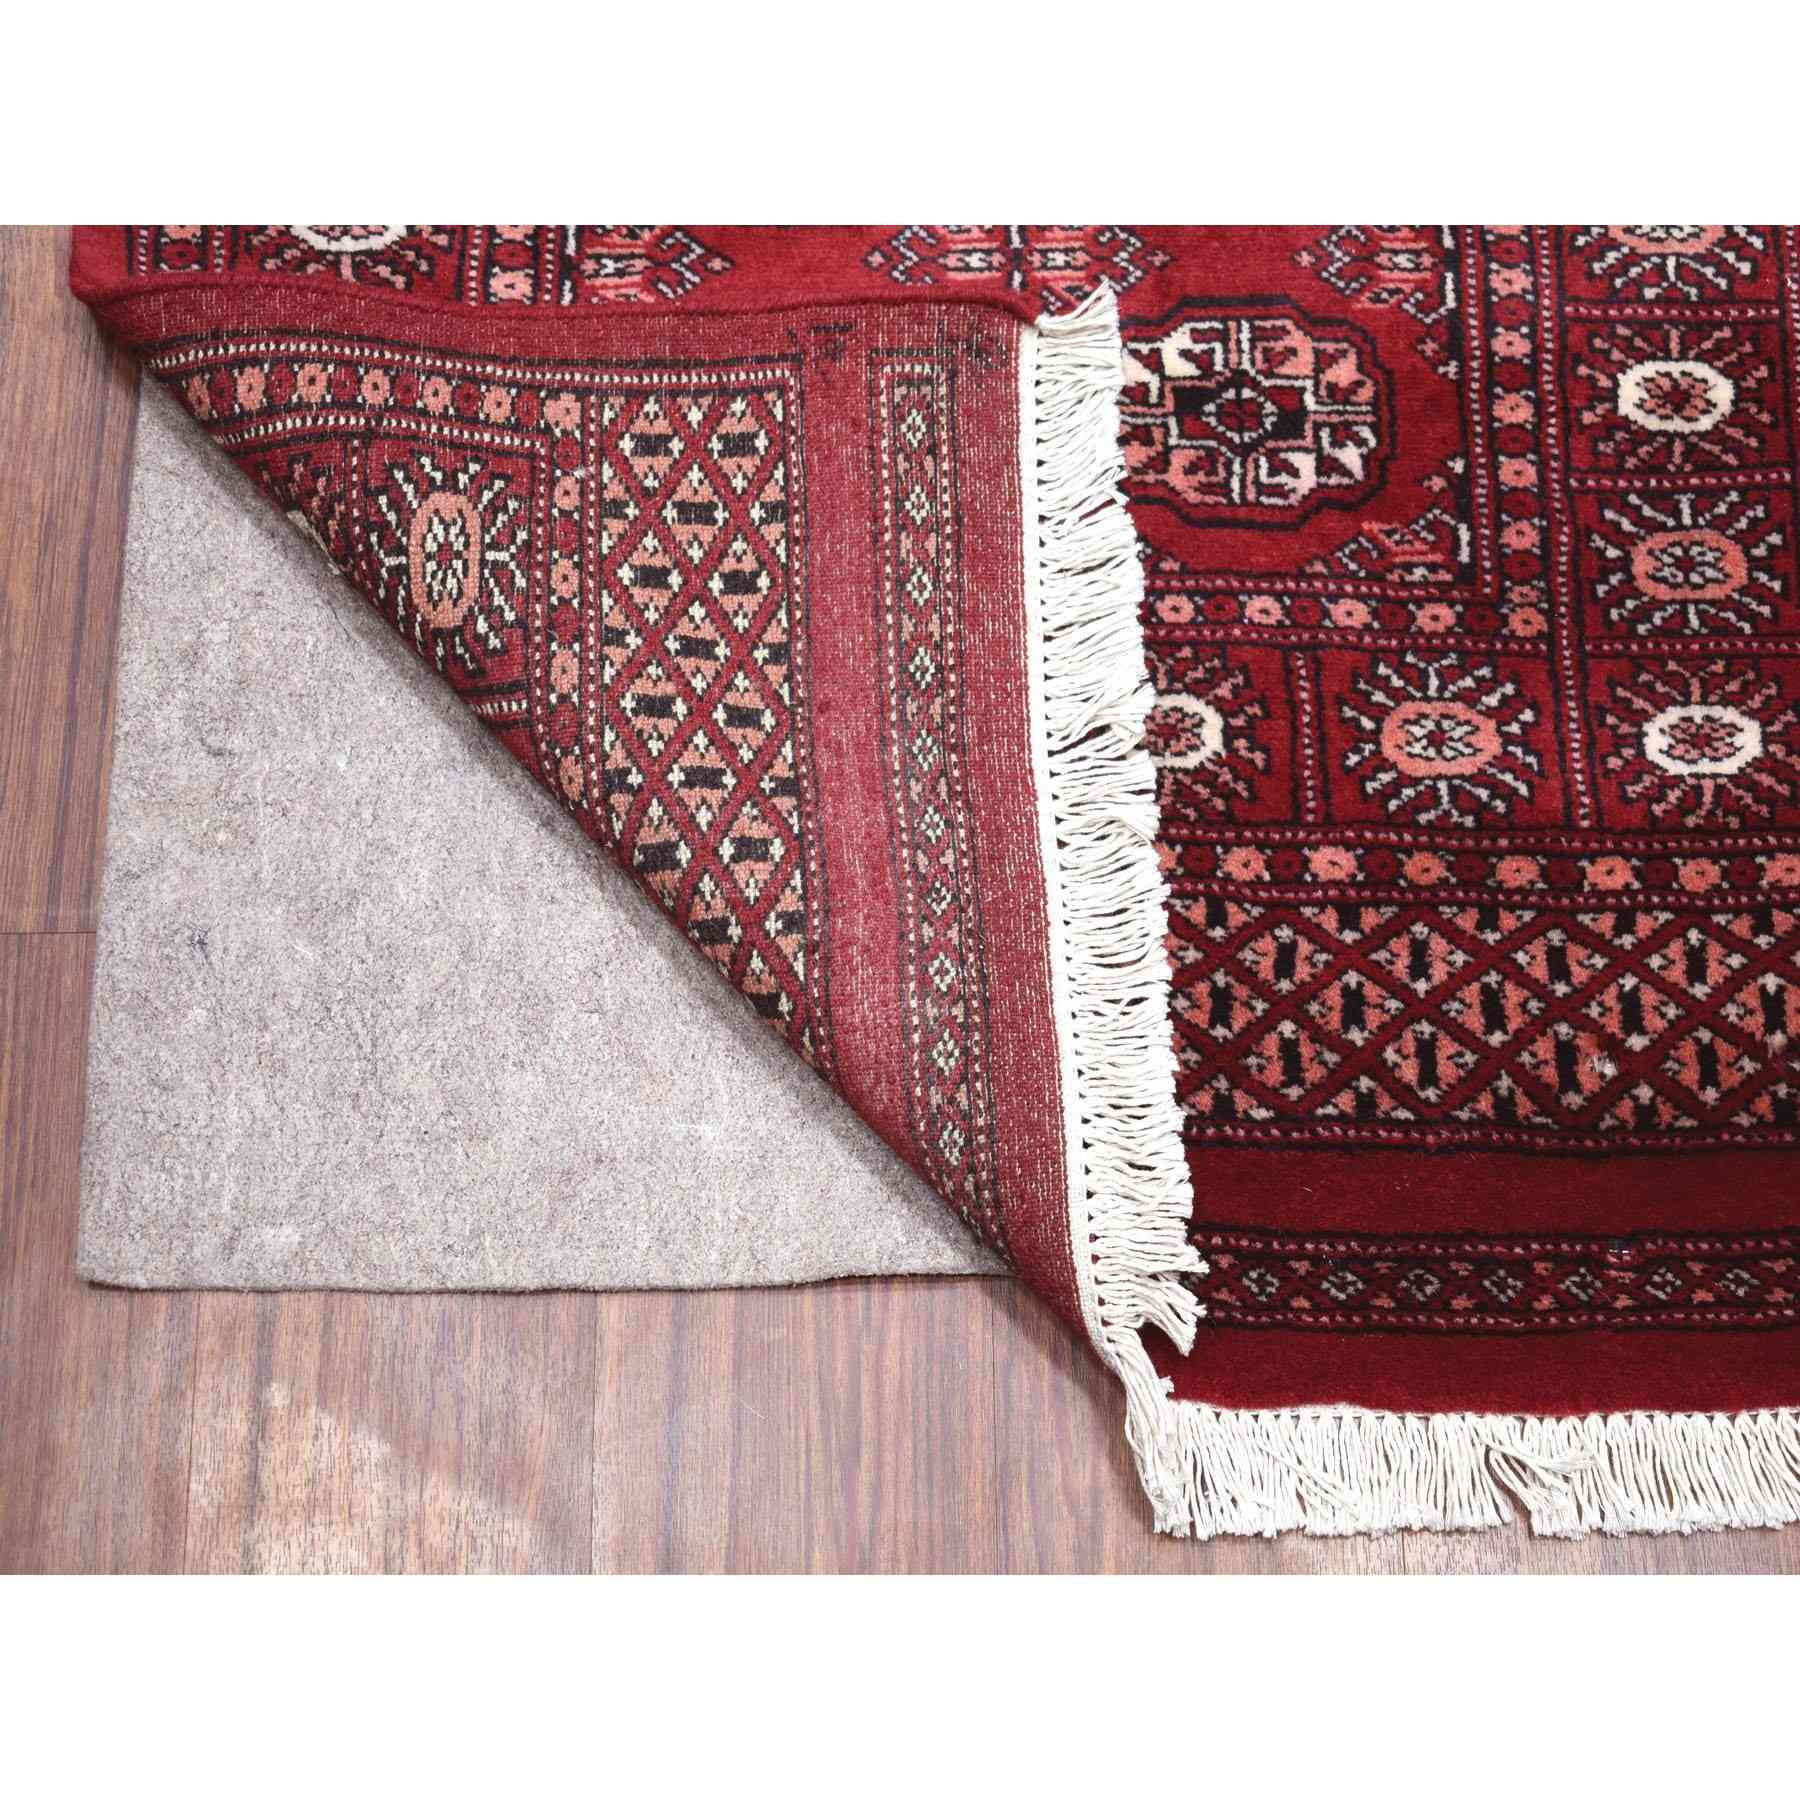 Tribal-Geometric-Hand-Knotted-Rug-275200